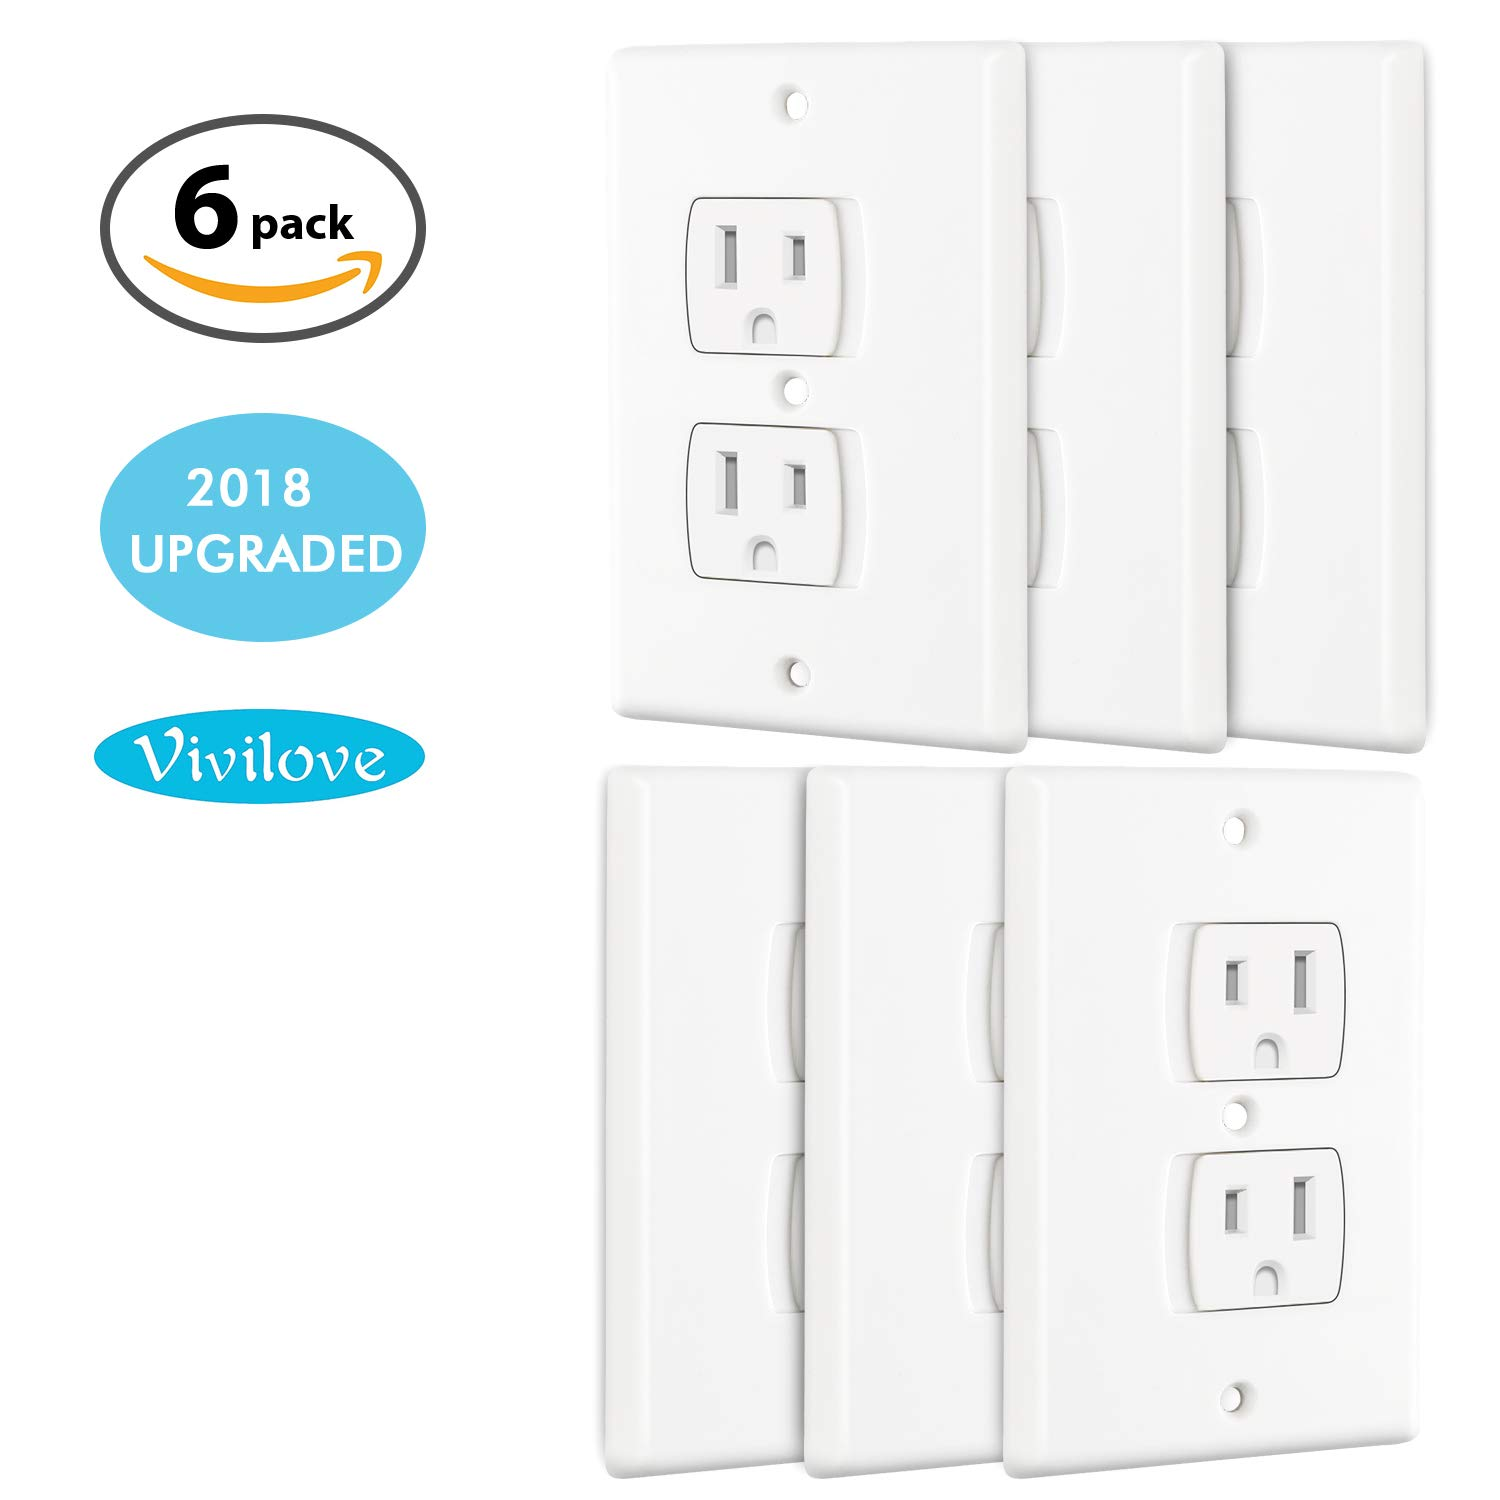 Self-Closing Wall Outlet Covers 6 Pack Universal Electric Socket Plugs Protector Baby Proofing Safety Guards, Retardant and BPA Free,Hardware Included, Easy to Install TUSUNNY